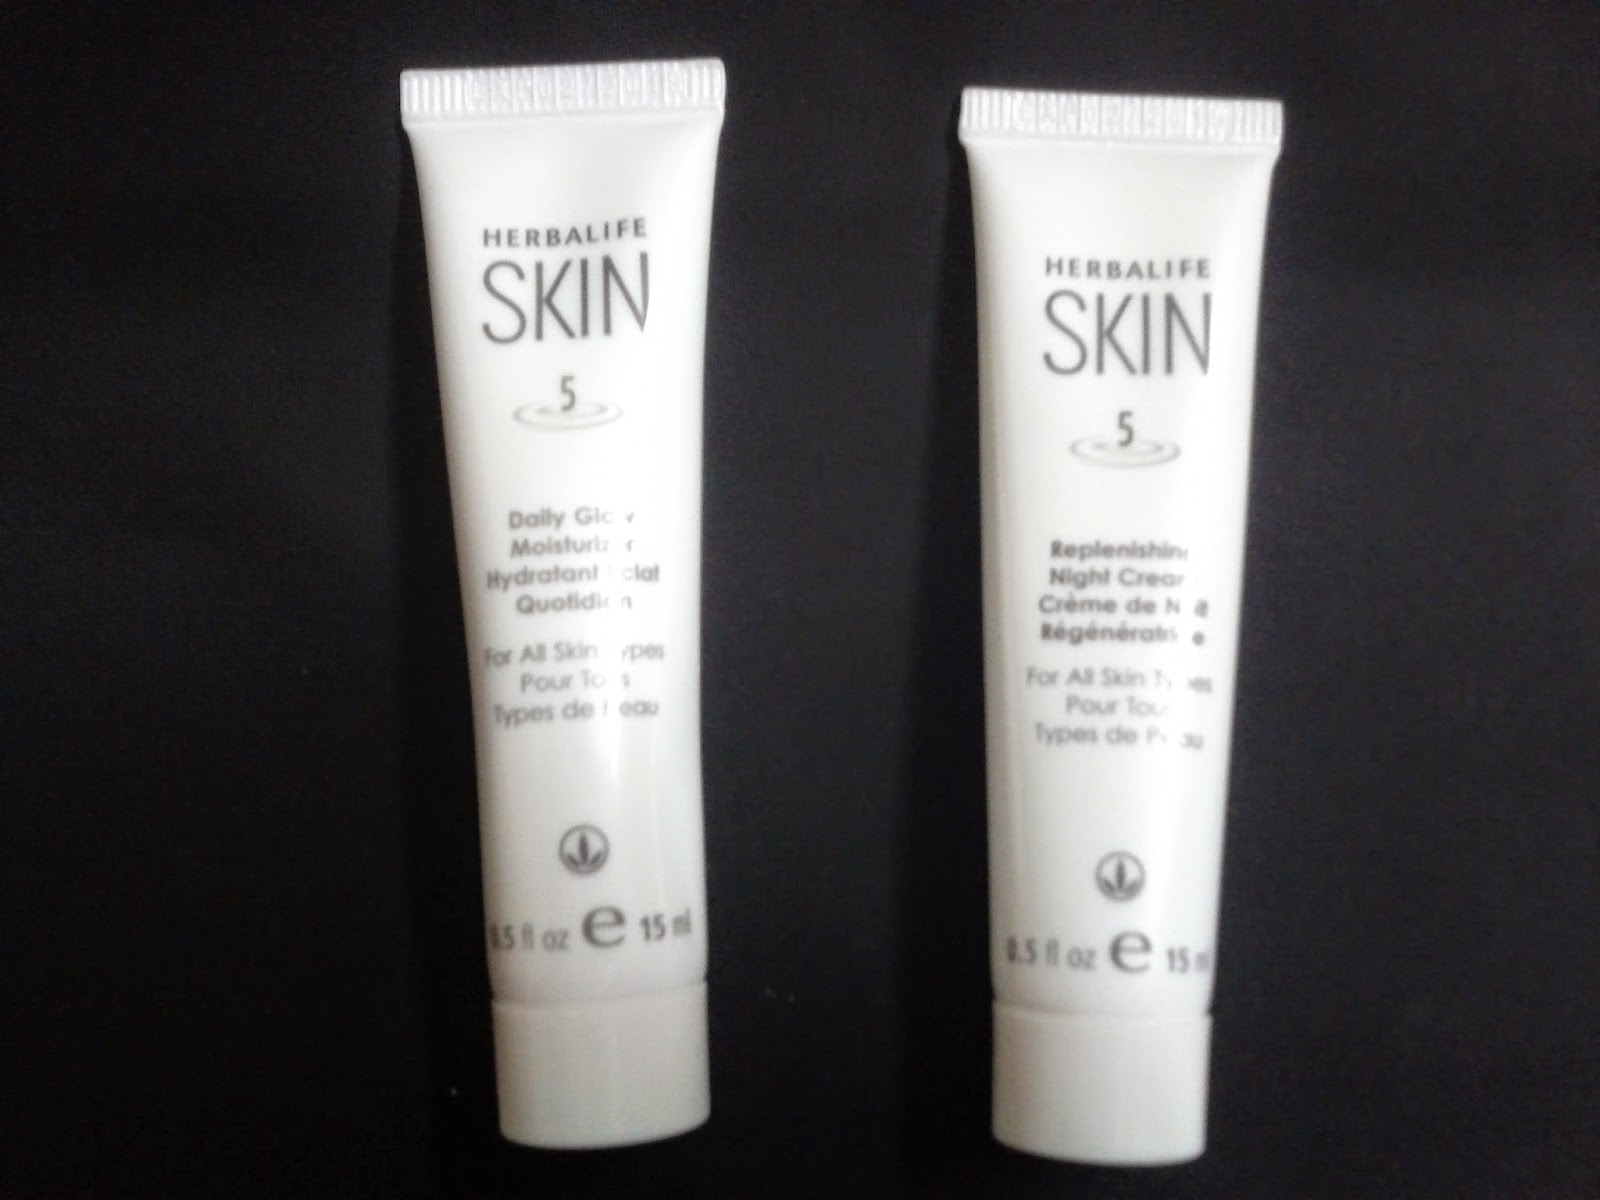 Care herbal life product skin - These Are The Products That Should Be Used Daily I Am Really Impressed By The Day And Night Cream The Radiance And The Glow Is Pretty Visible